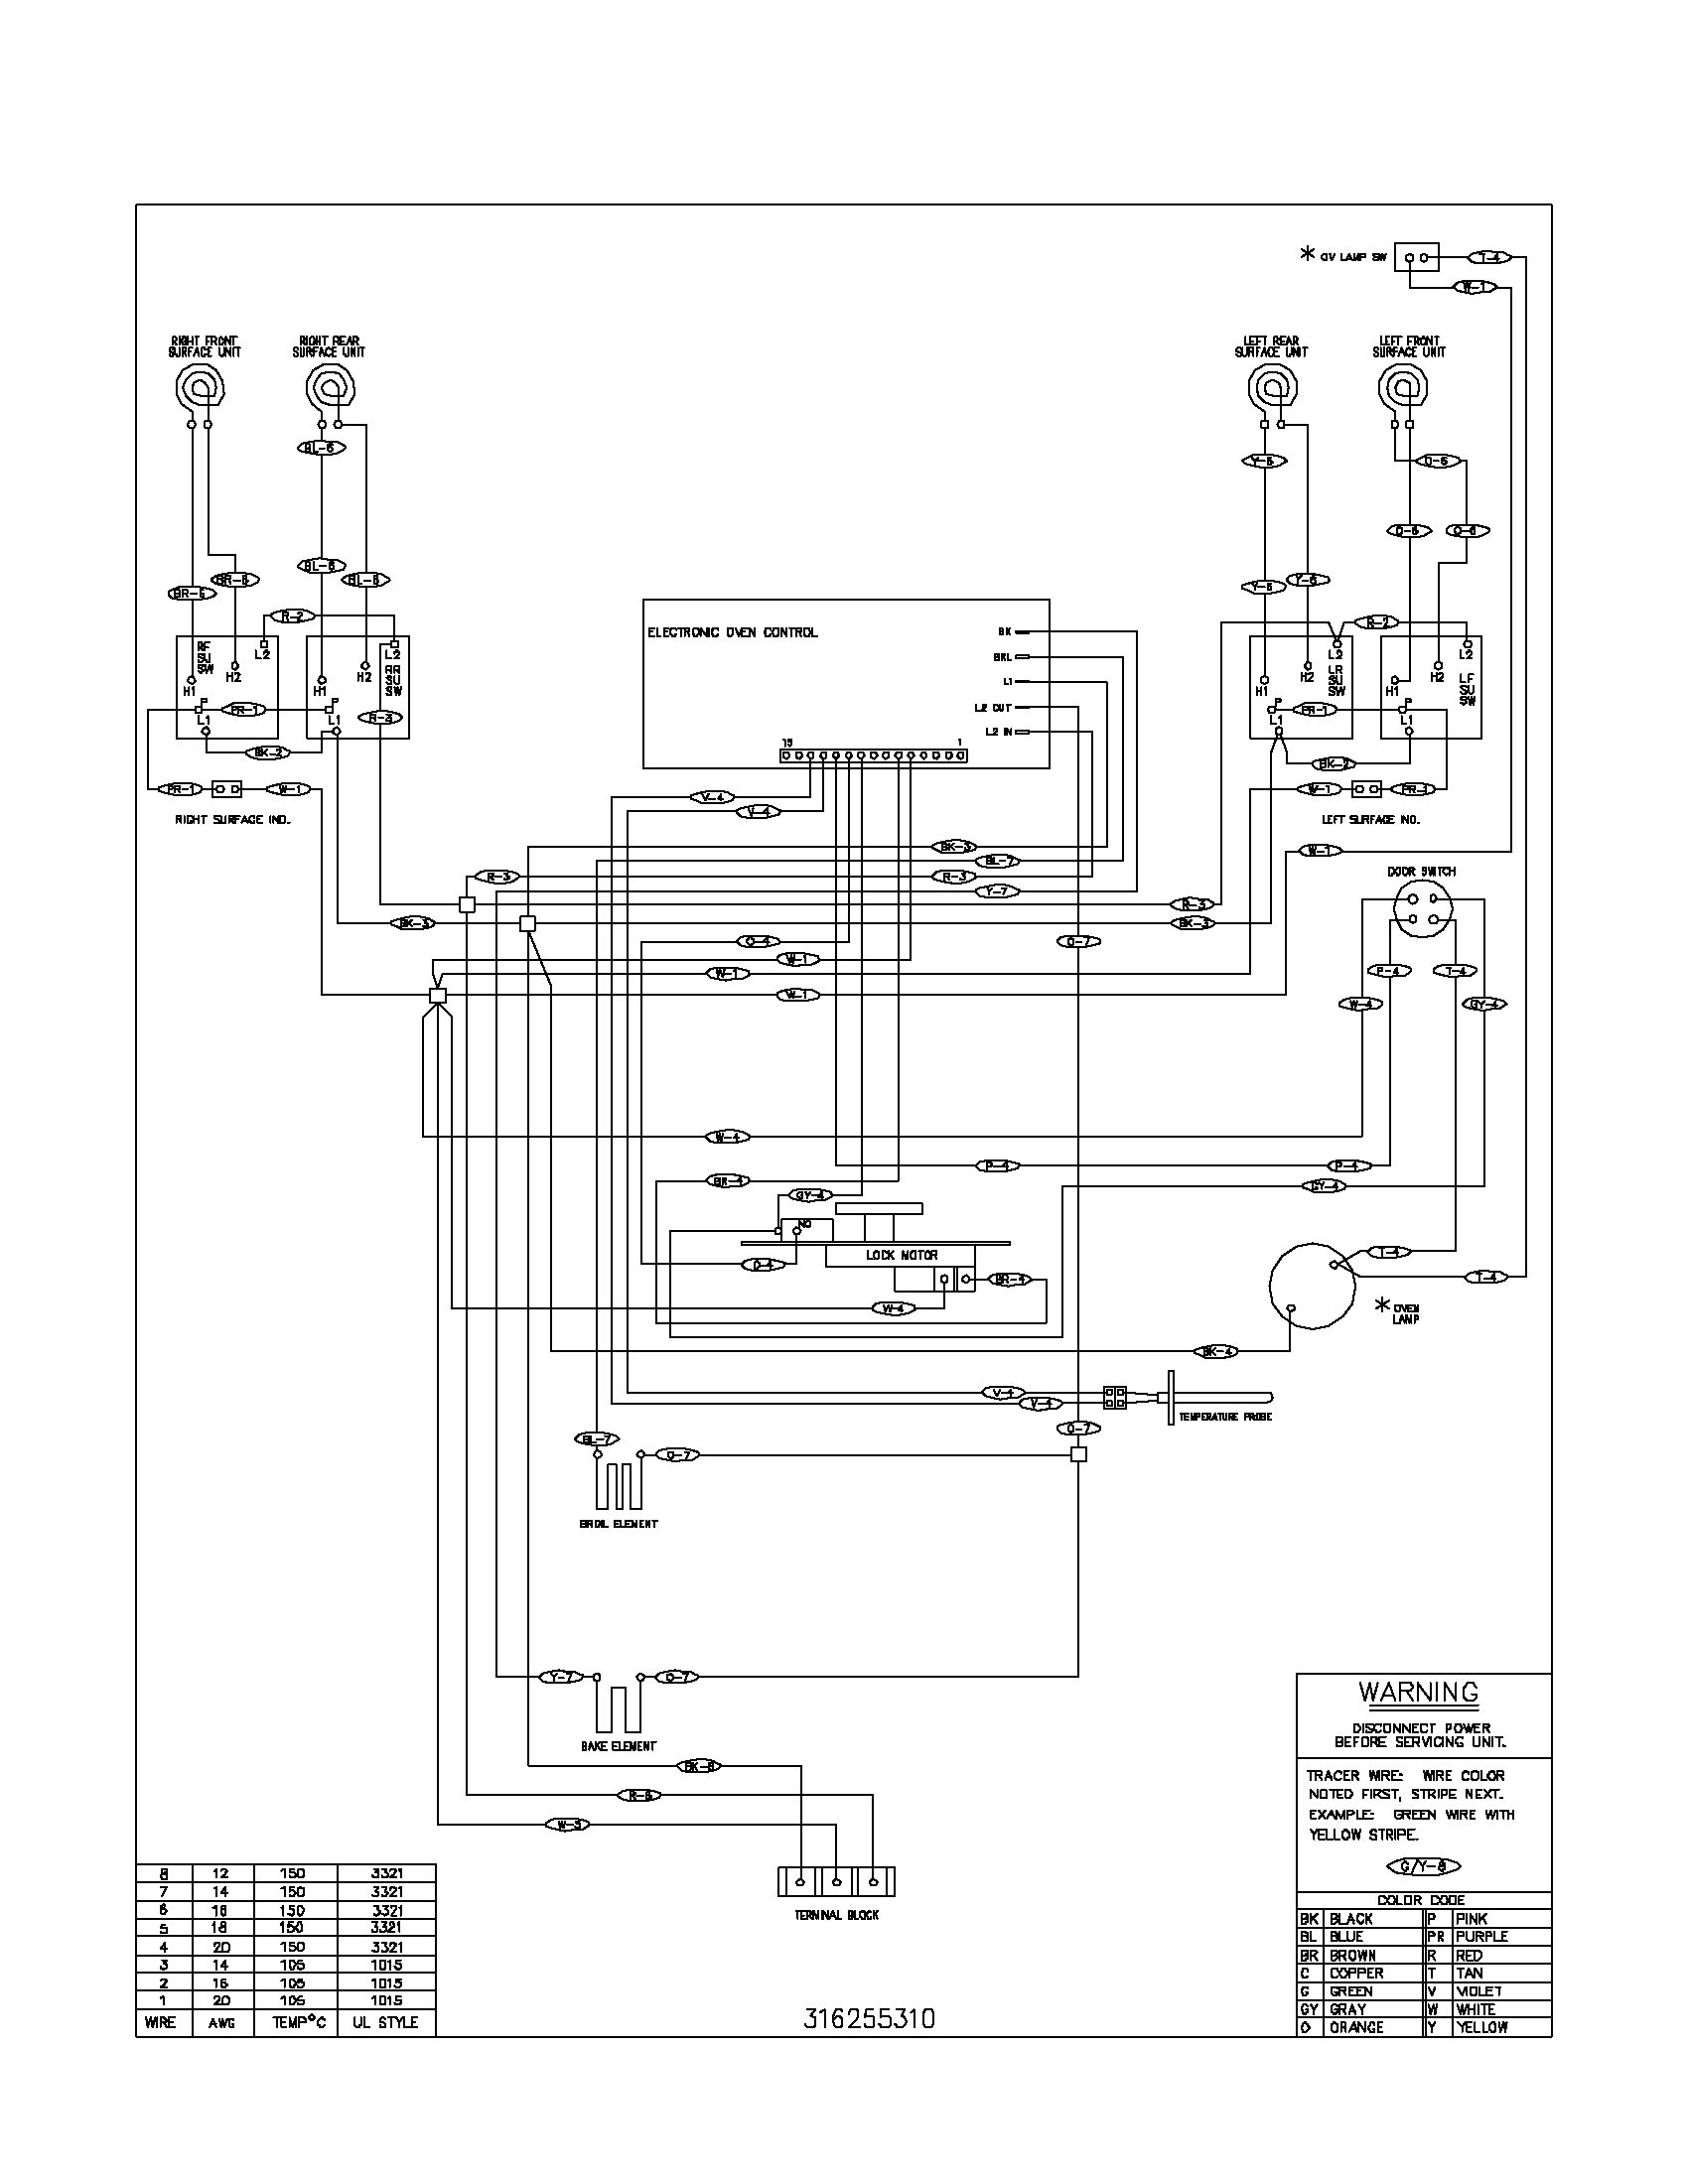 frigidaire wall oven wiring diagram Download-Frigidaire Affinity Dryer Wiring Diagram 10-t